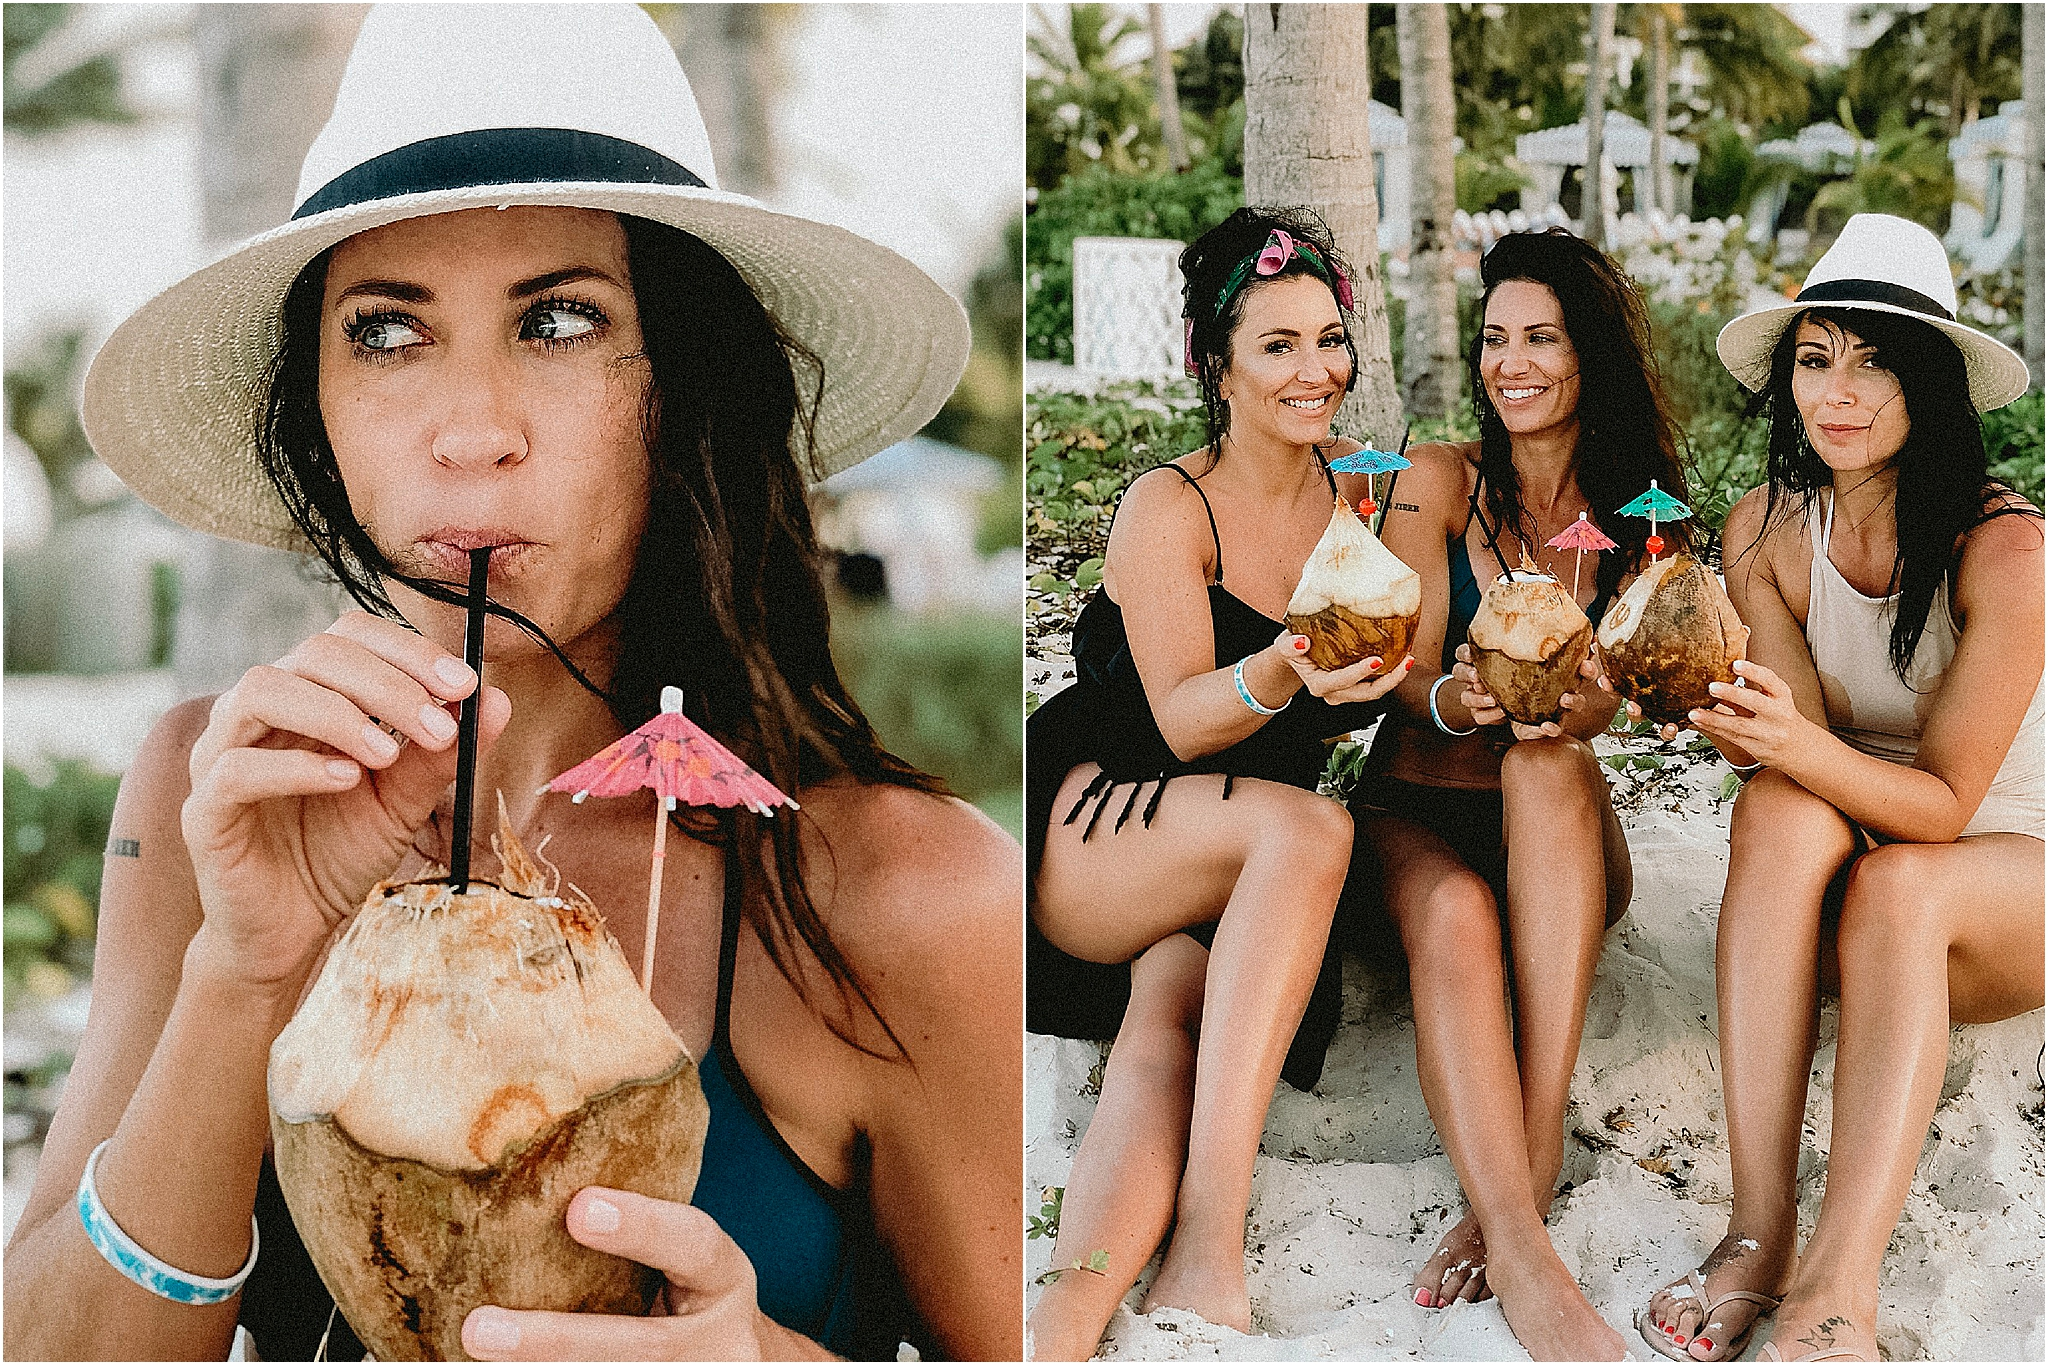 nothing beats a pinA colada in a coconut!